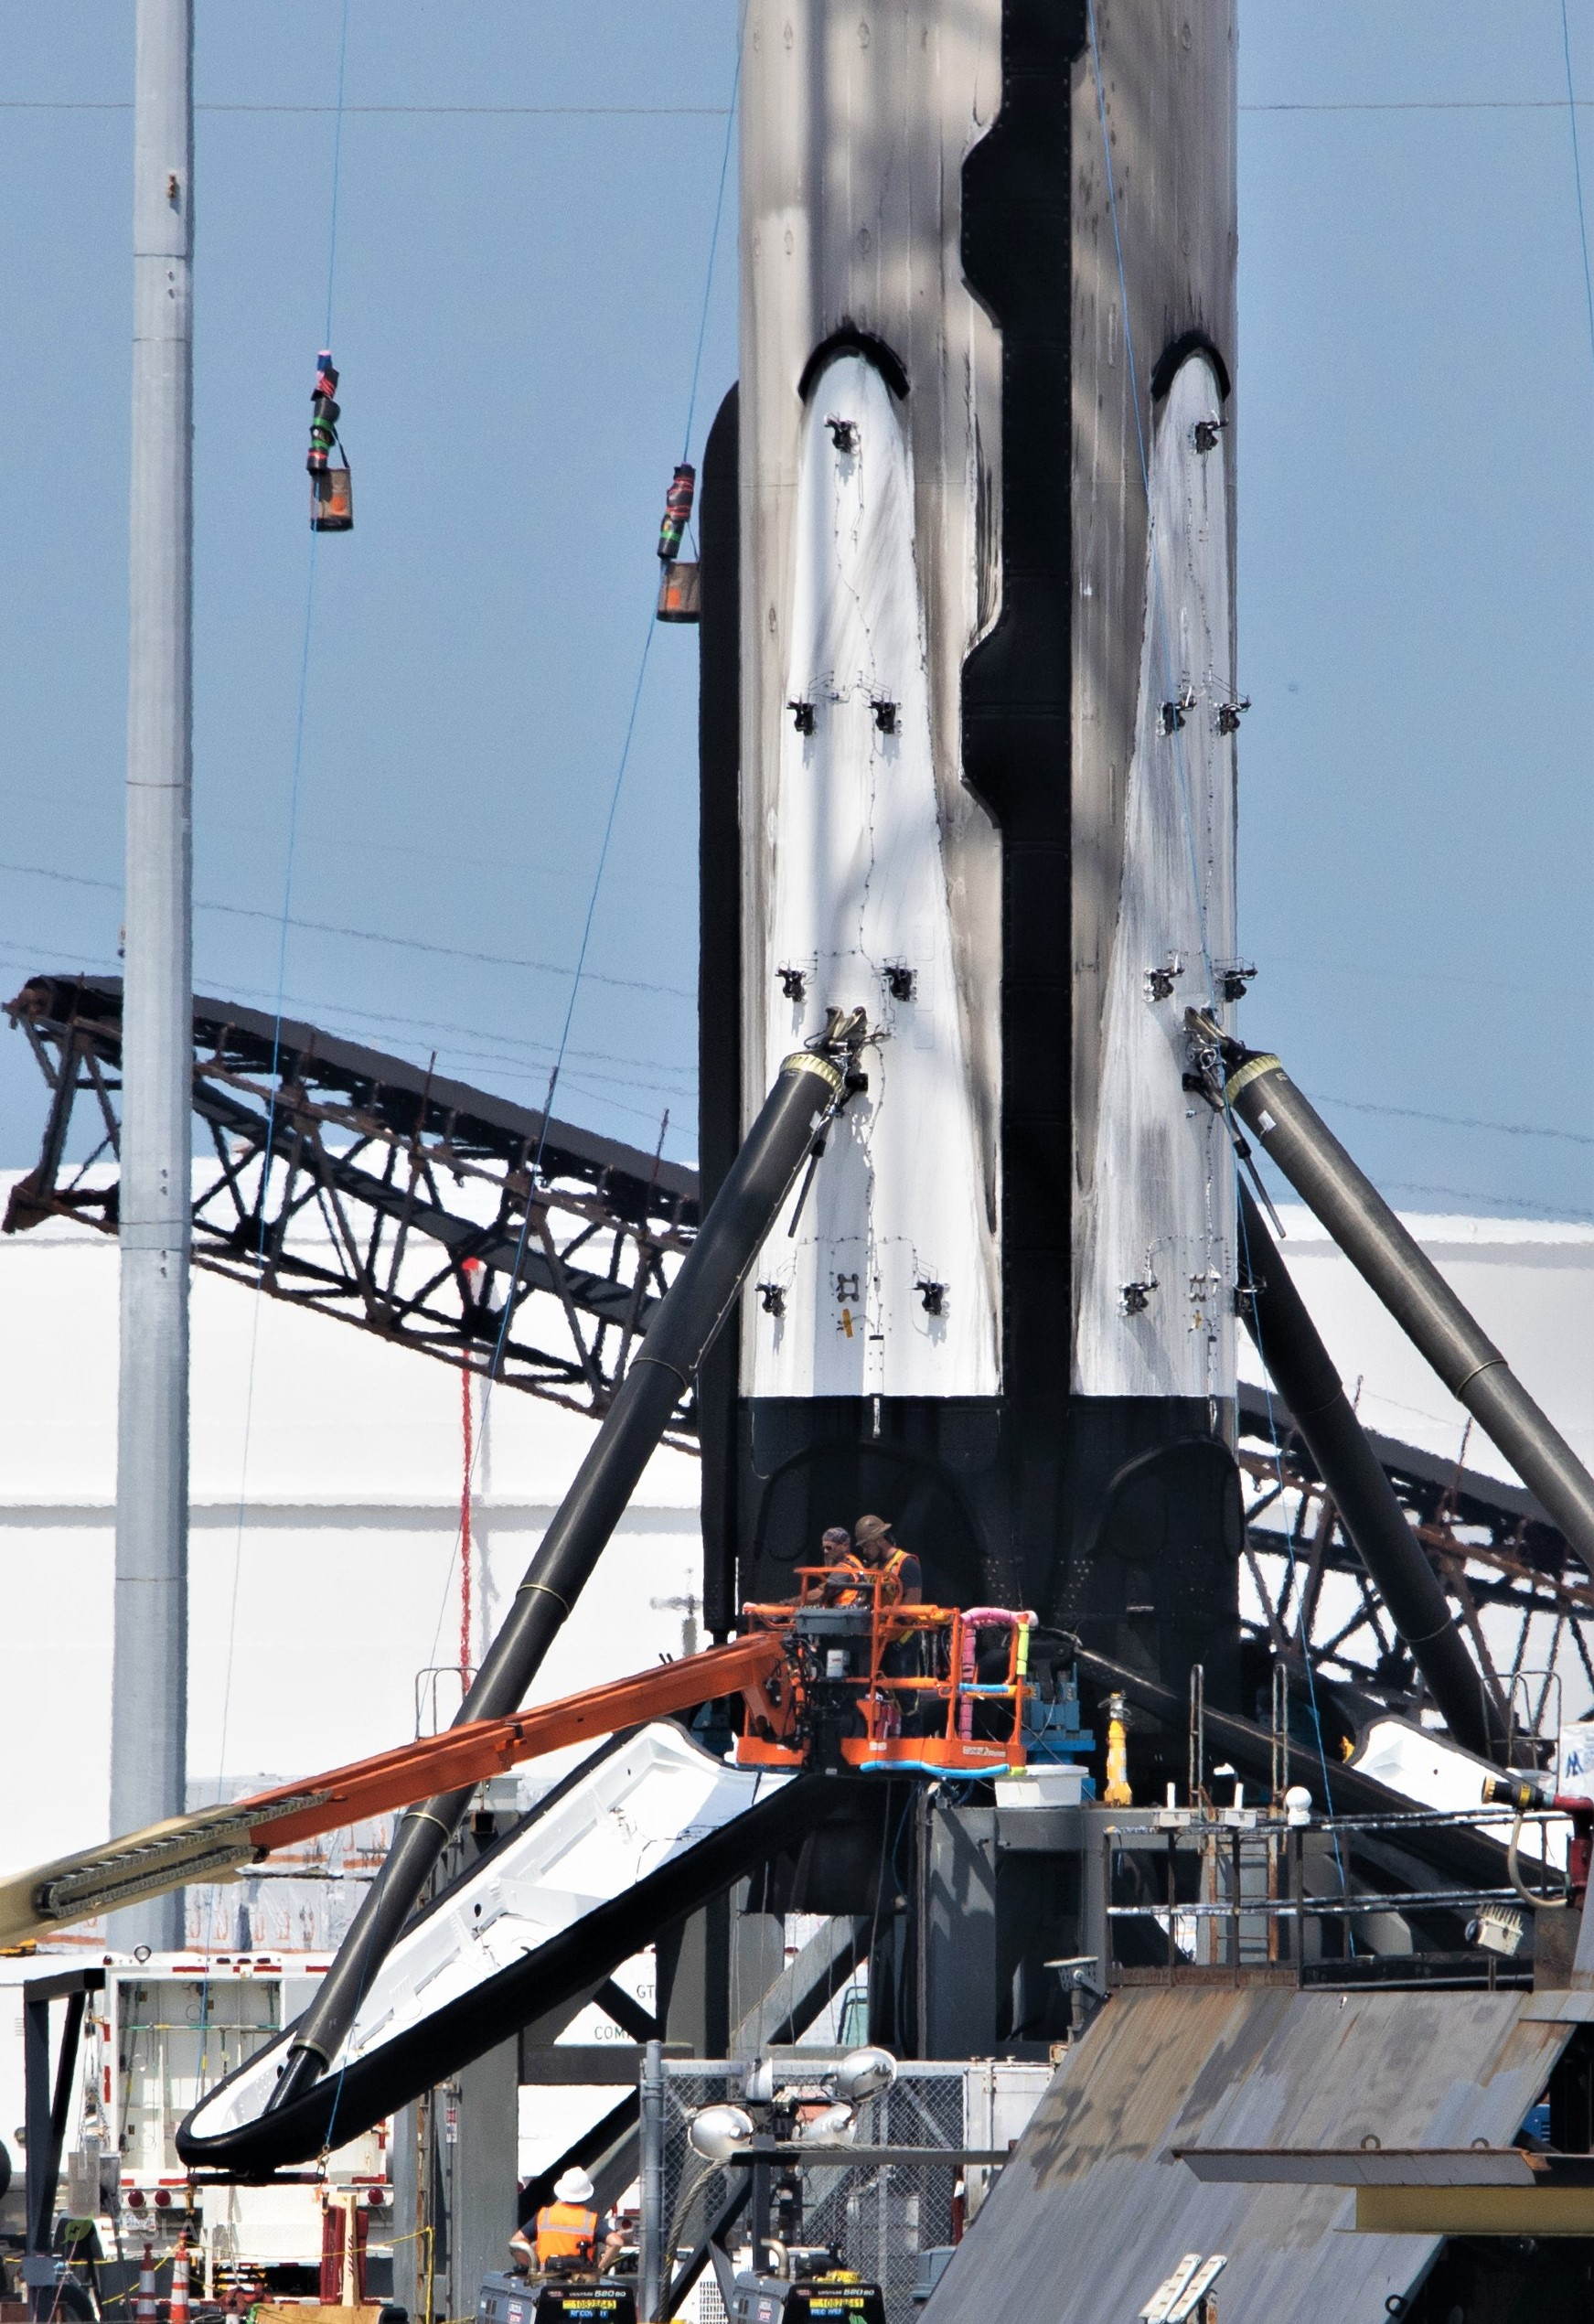 Falcon 9 b1056 leg retraction 1 of 4 050719 (Tom Cross) 1